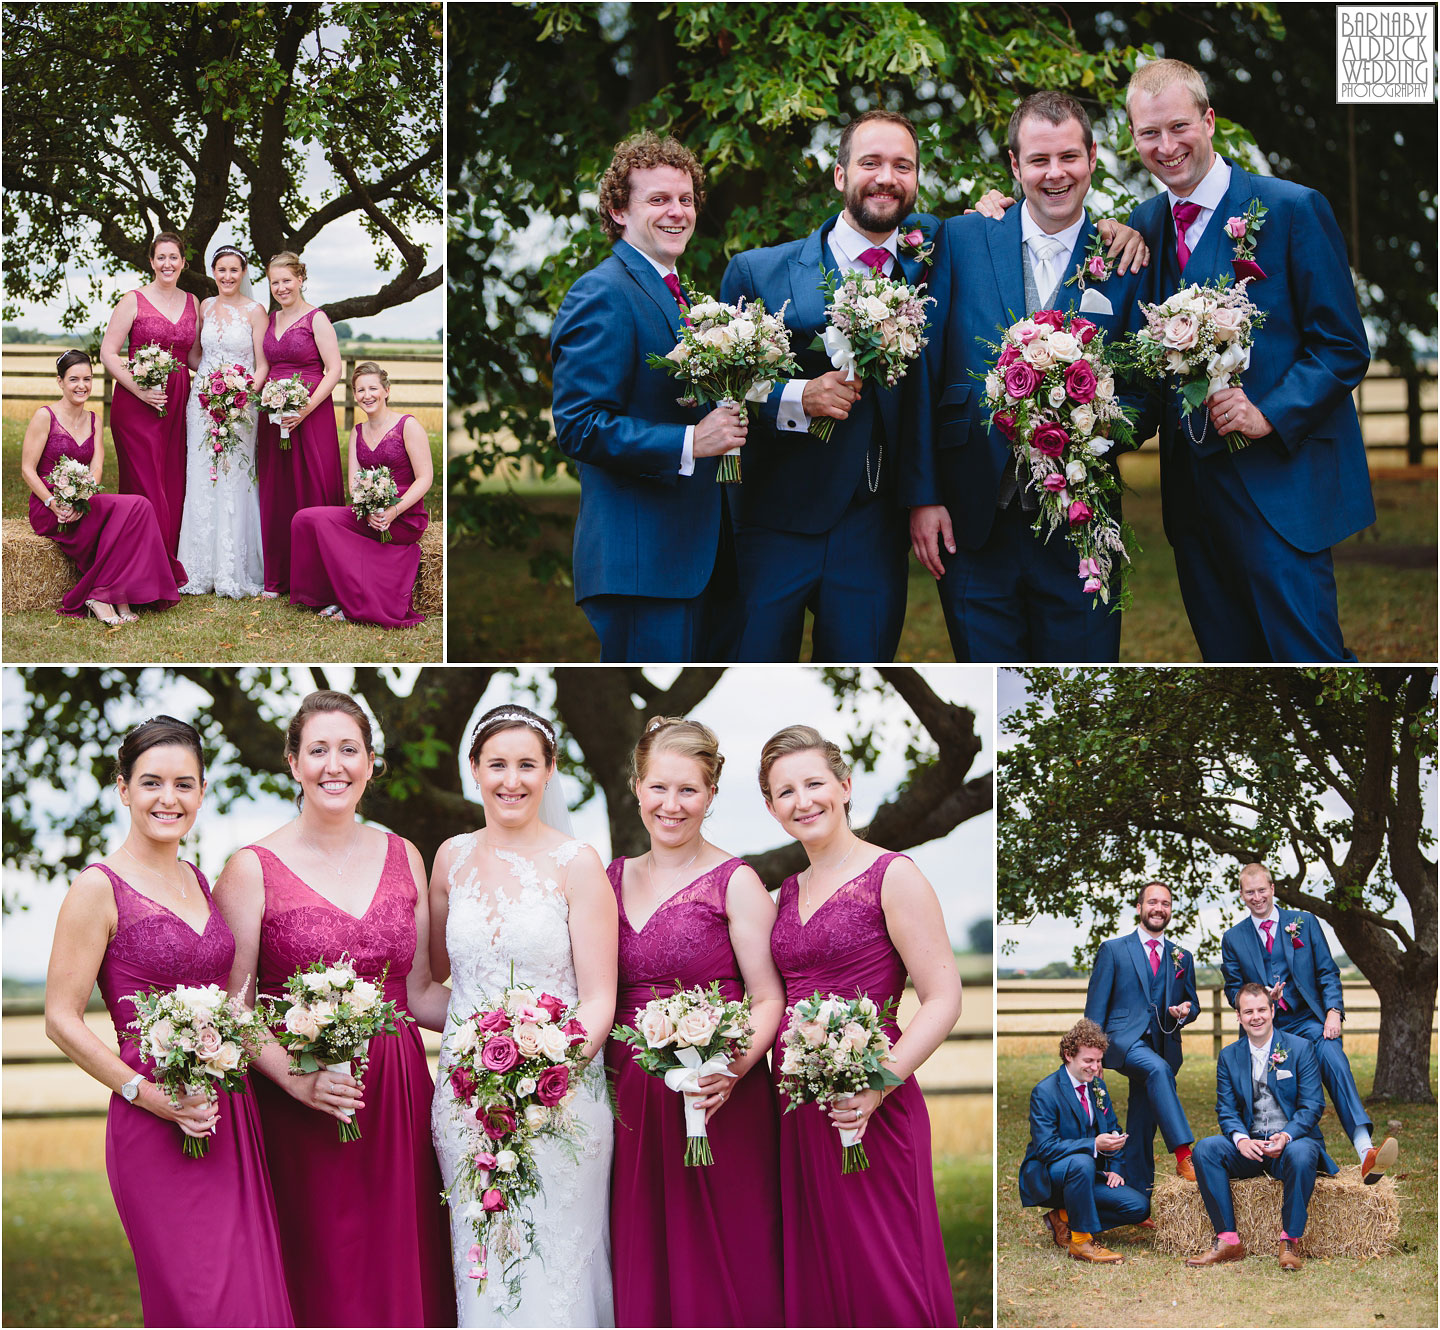 Bridal party portraits at at Barmbyfields Barn wedding venue near York